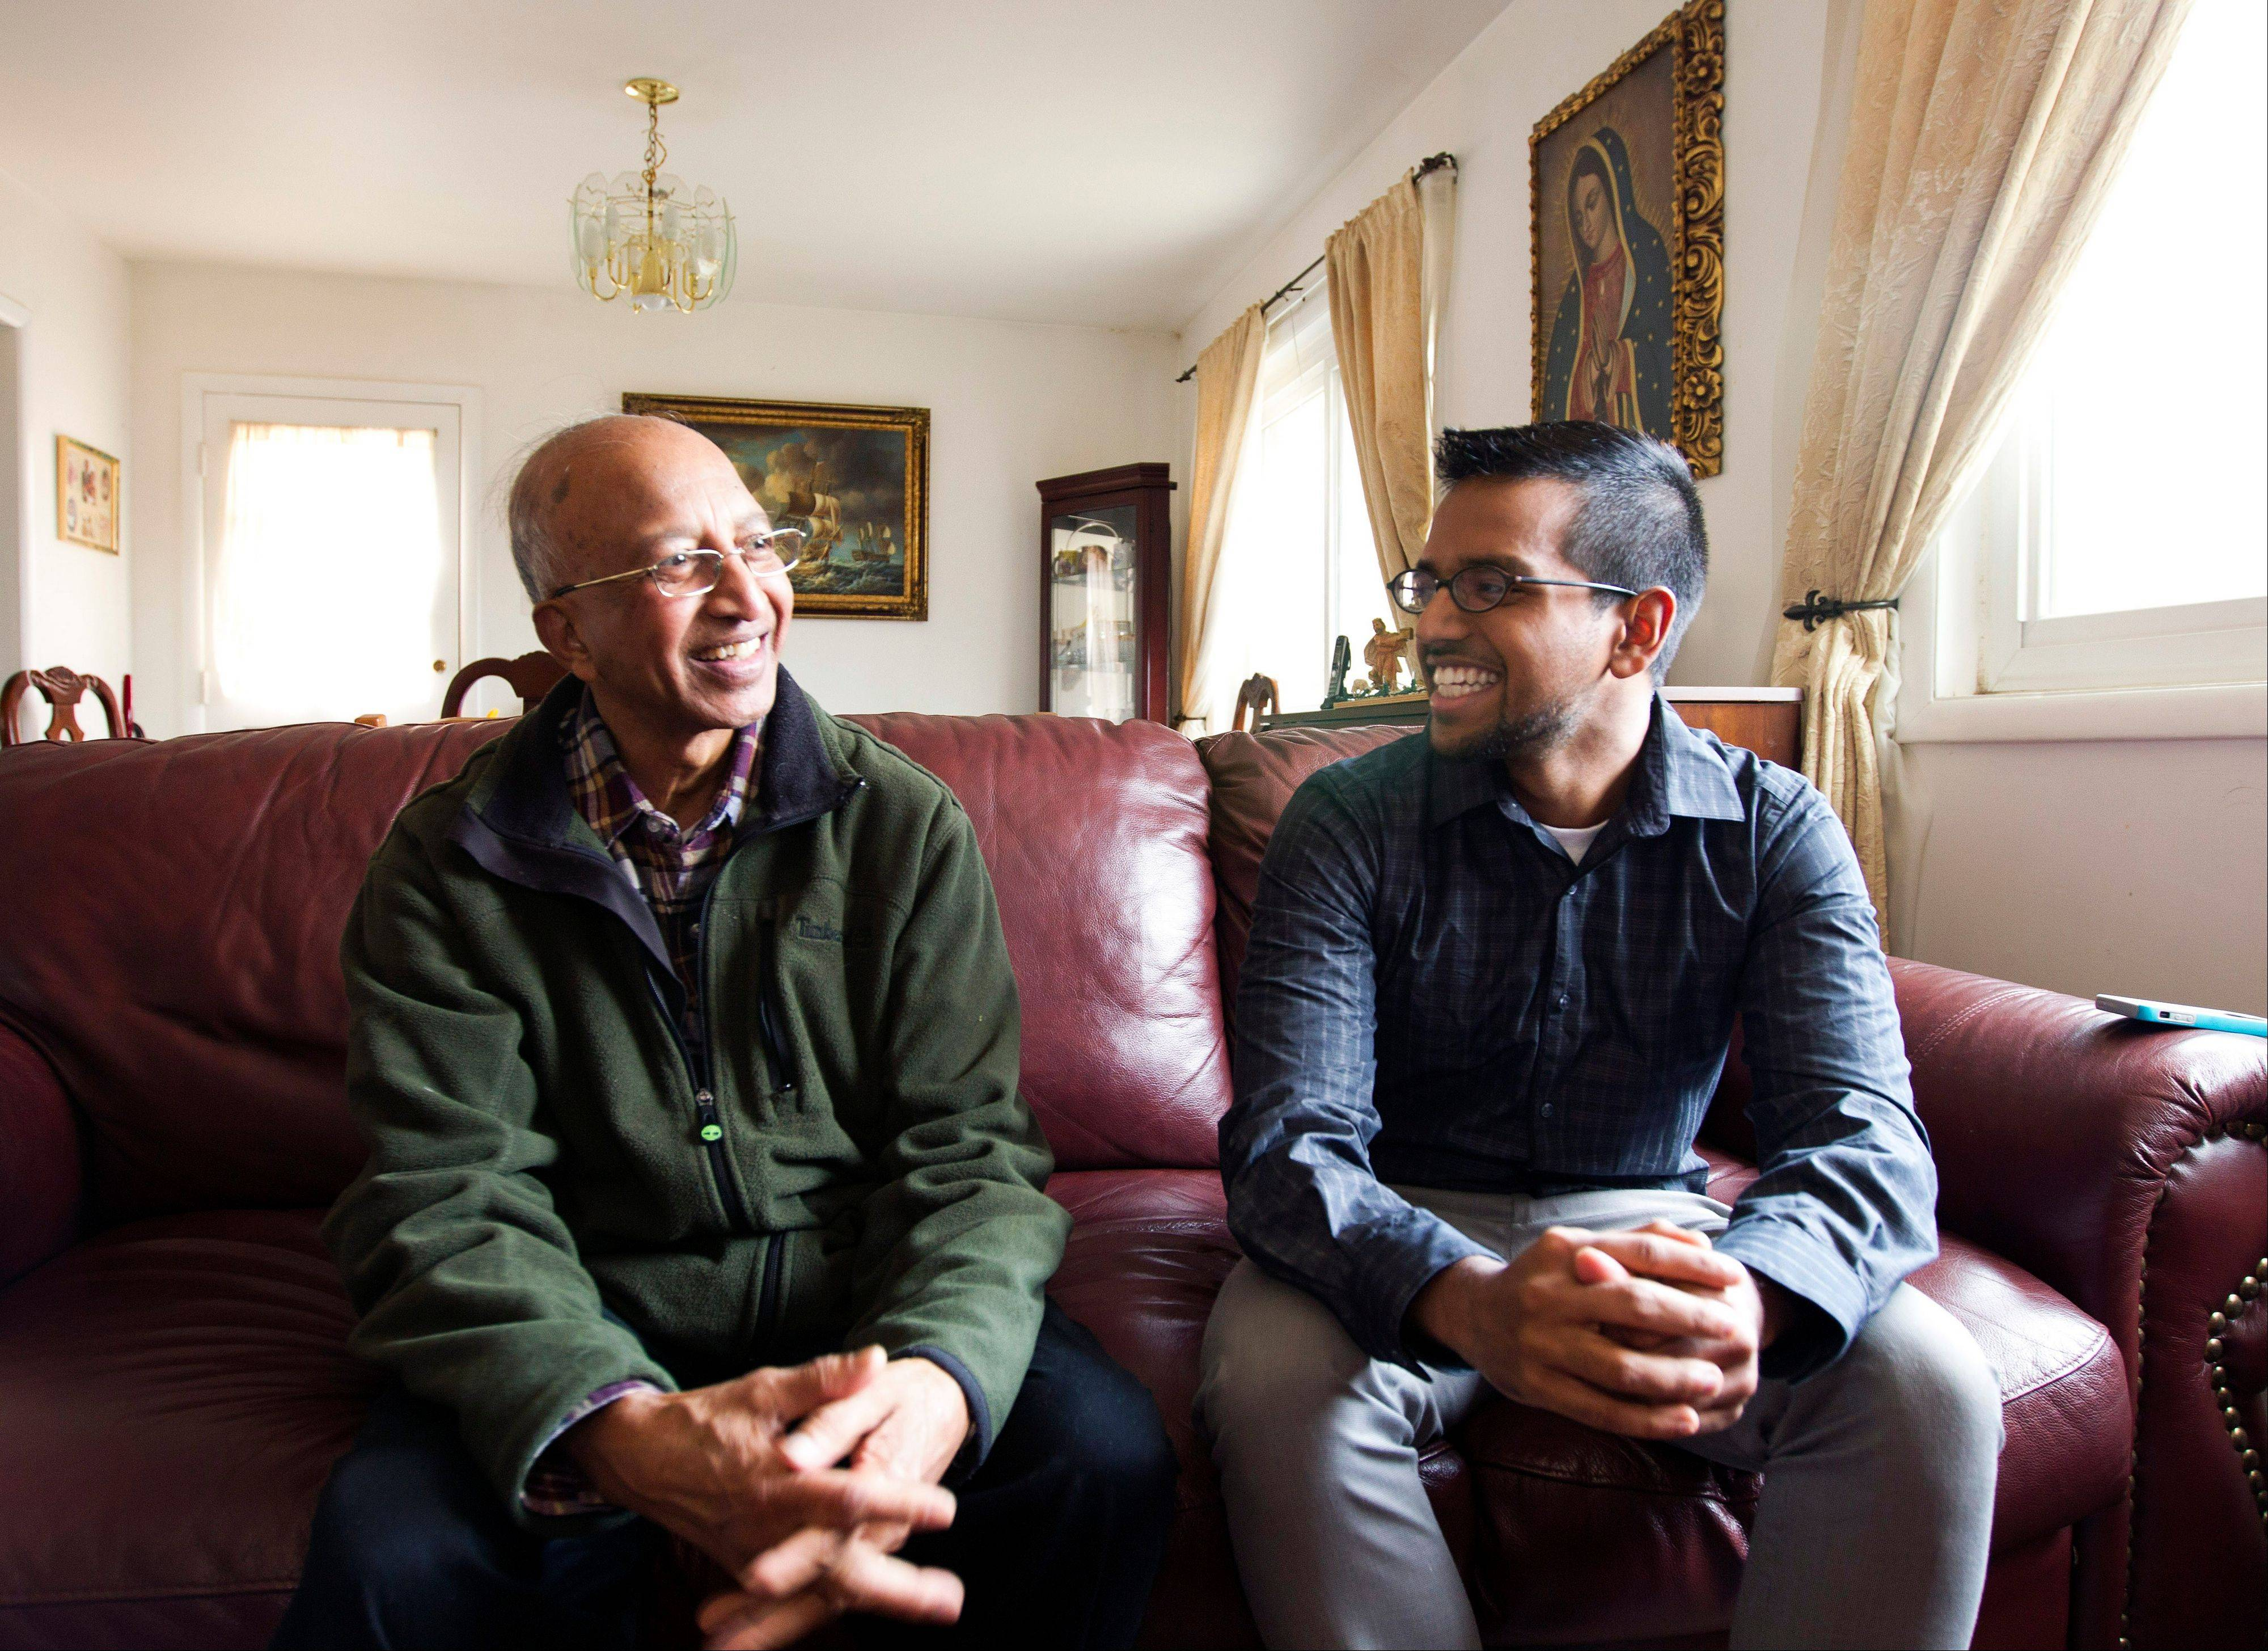 Yves Gomes, a student at the University of Maryland, who�s parents were deported, right, talks Friday to his great uncle Henry Gomes, in his great uncle�s house where he lives, in Silver Spring, Md.,